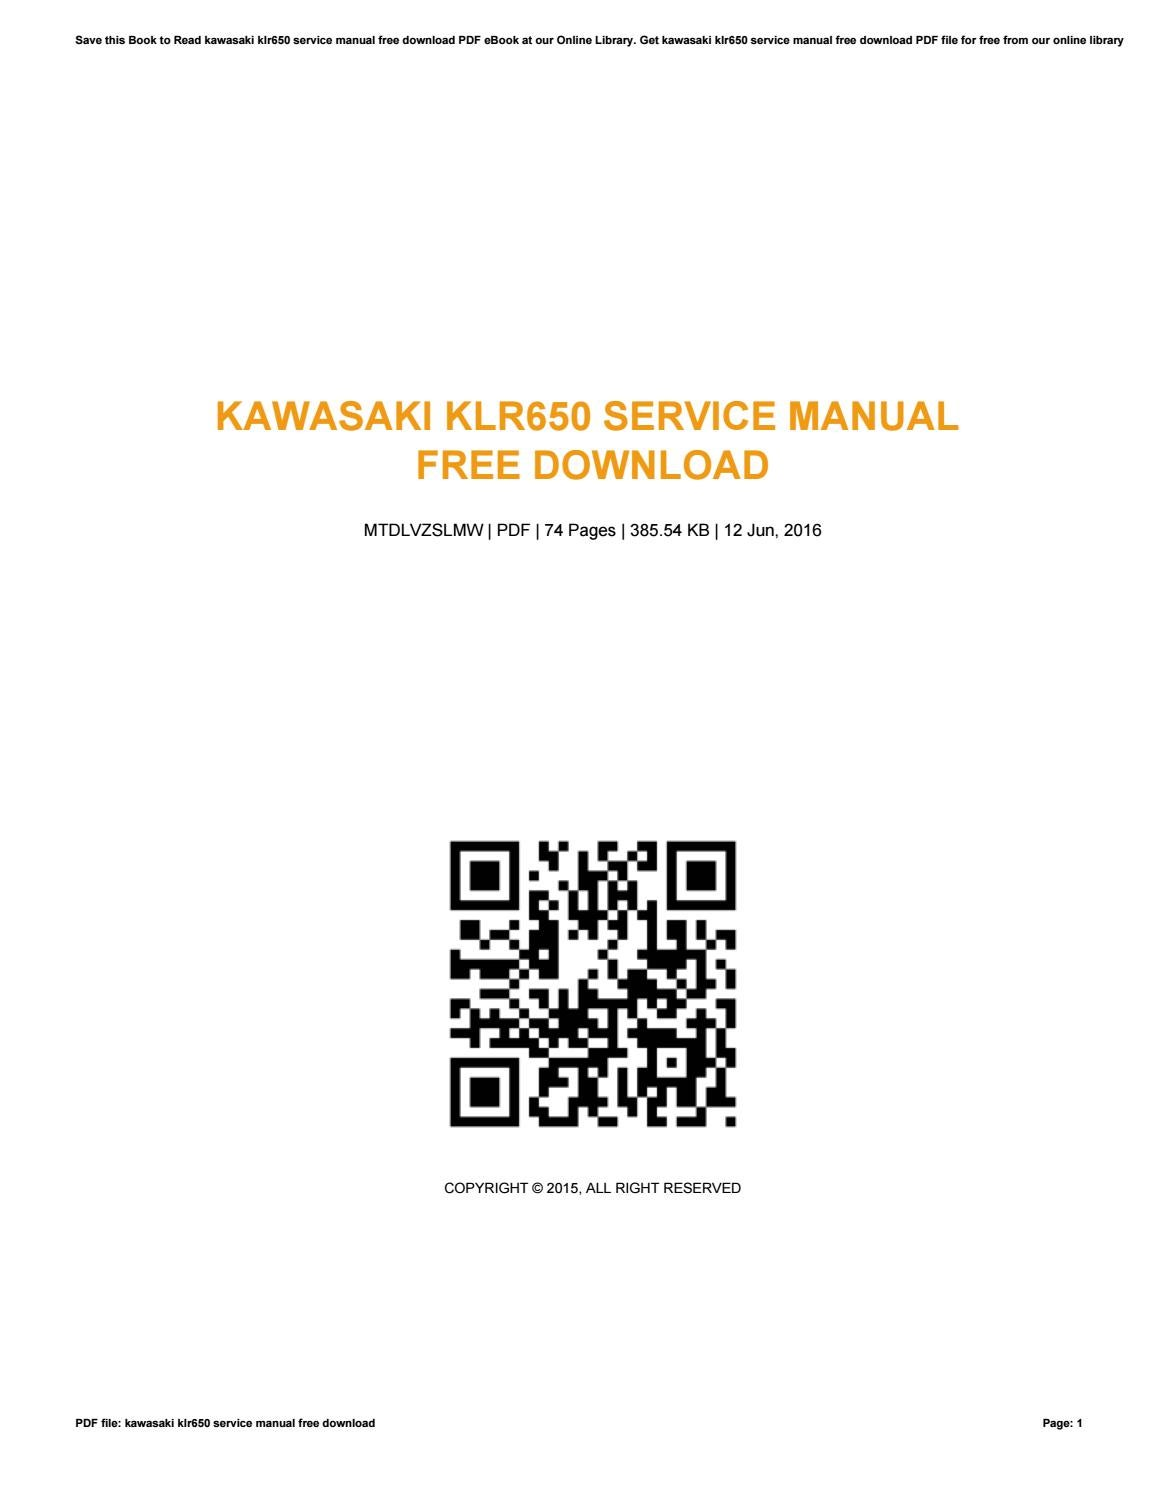 kawasaki barako 175 manual ebook